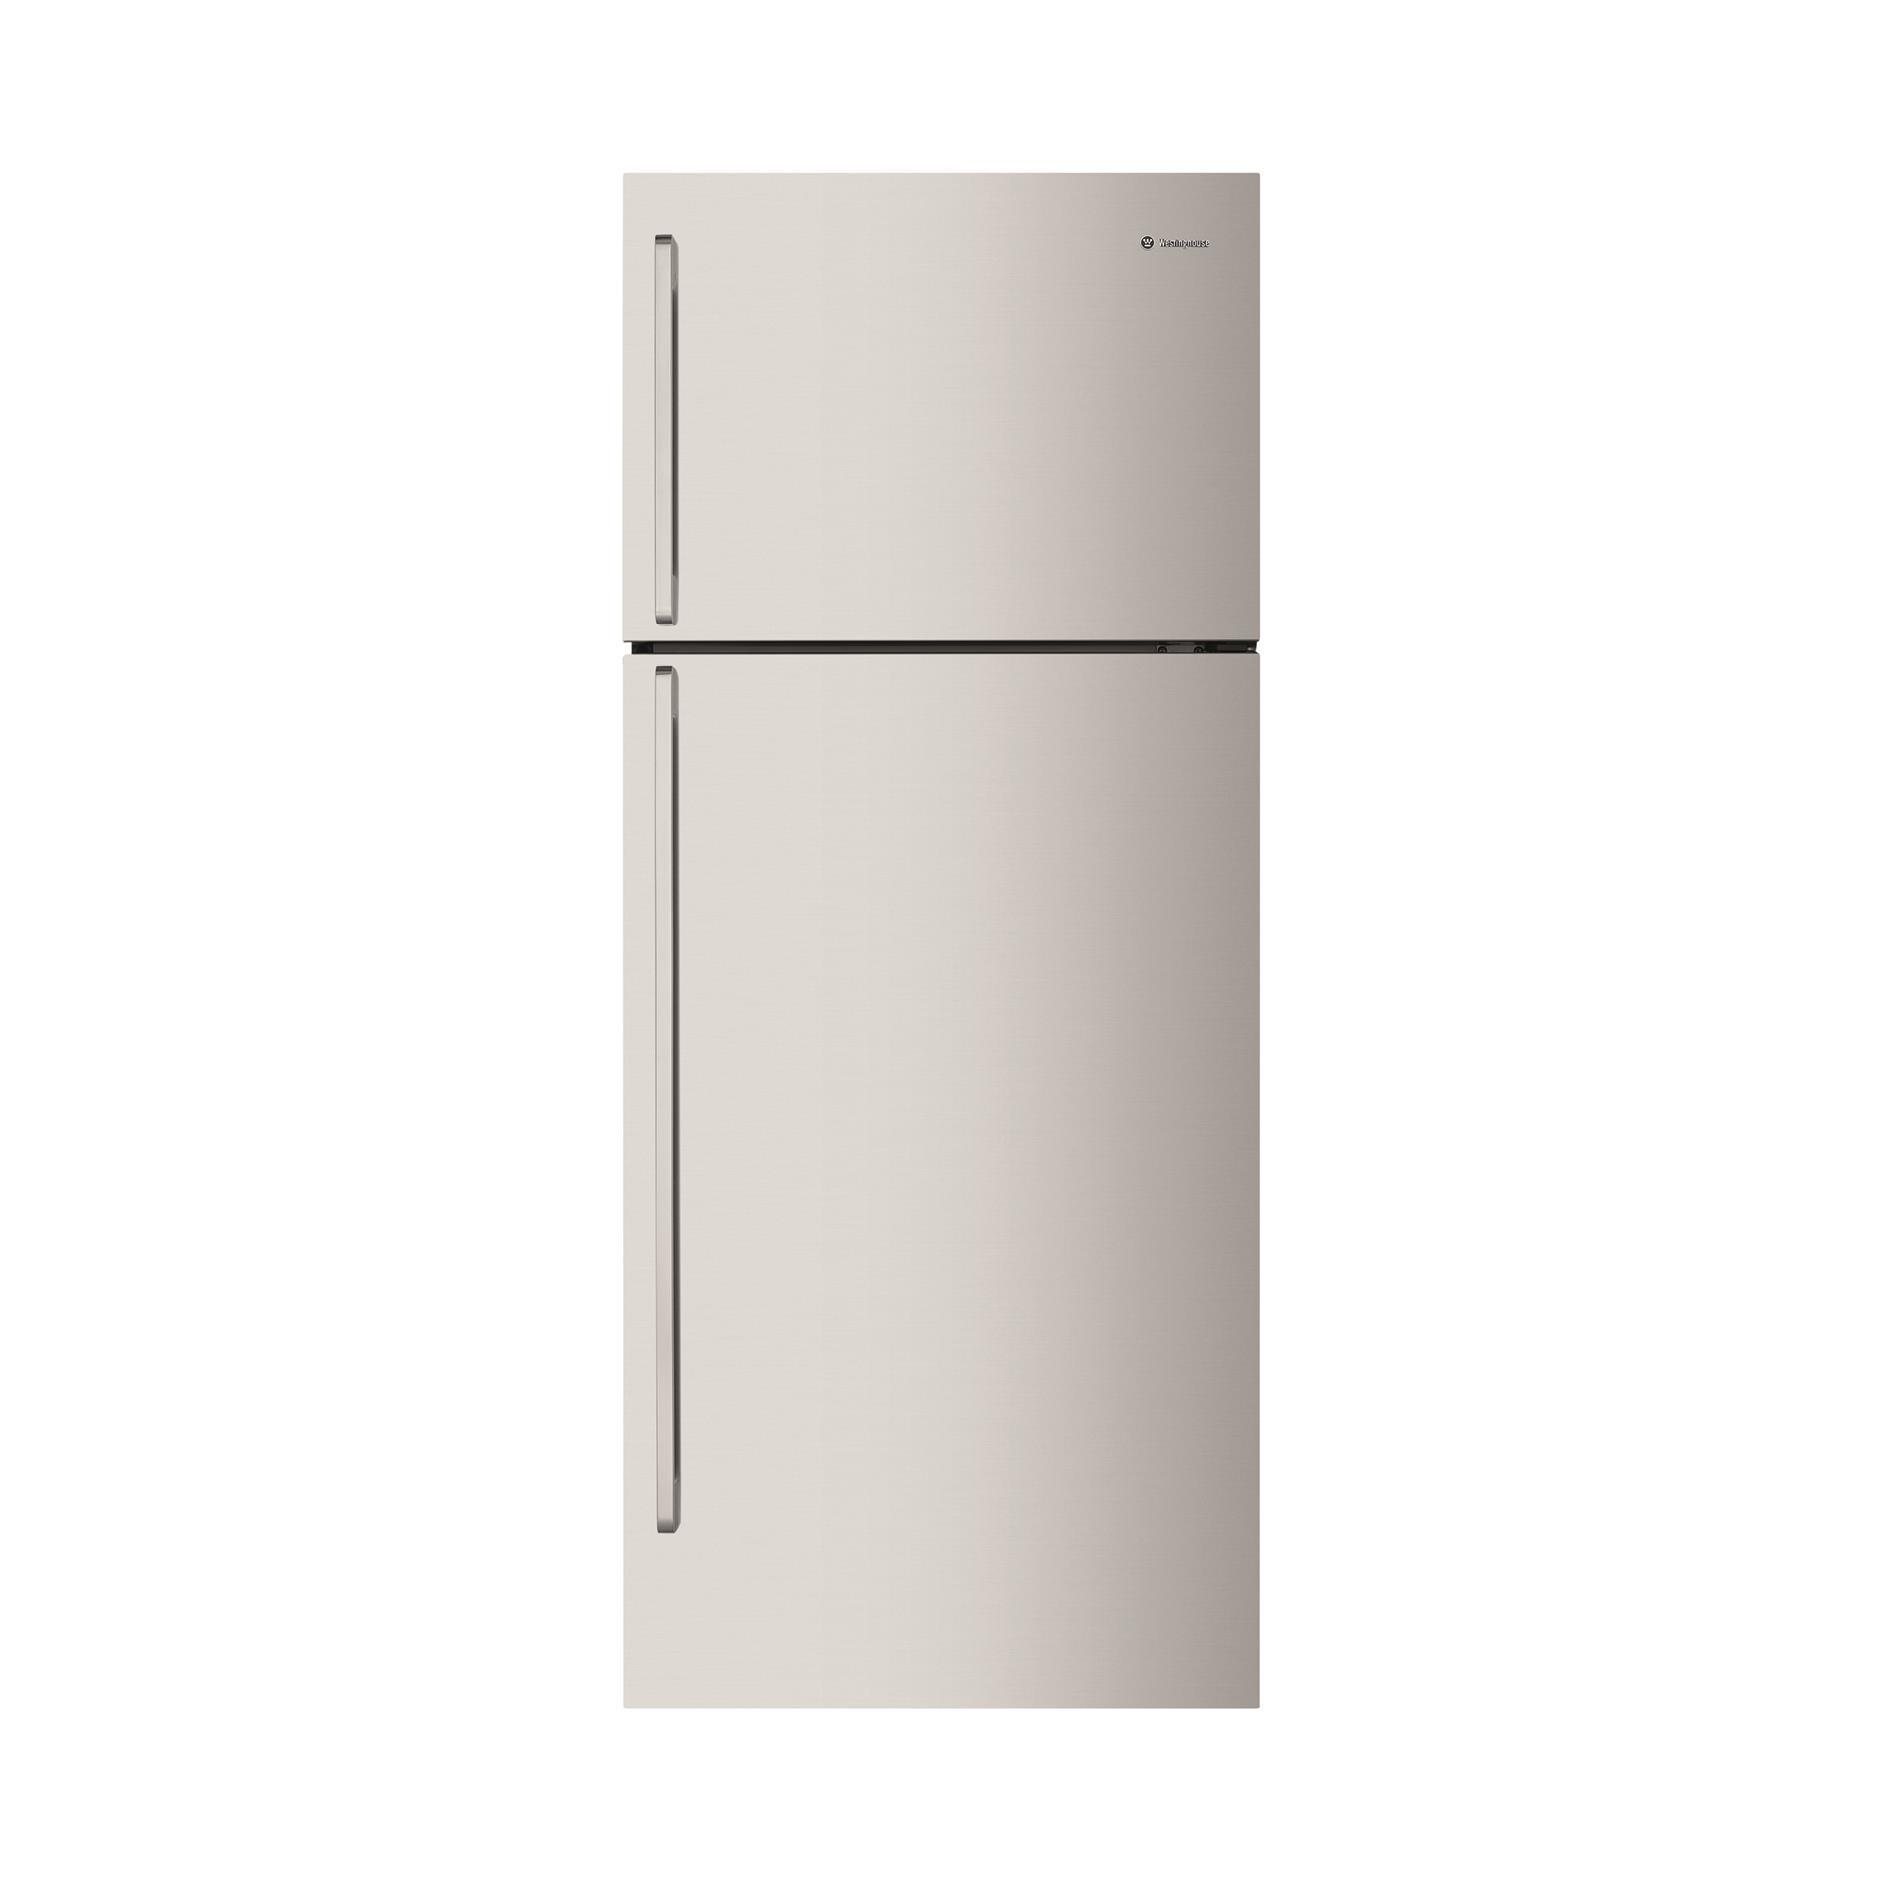 Westinghouse WTB4604SB 460L Top Mount Fridge (S/Steel) [Right]